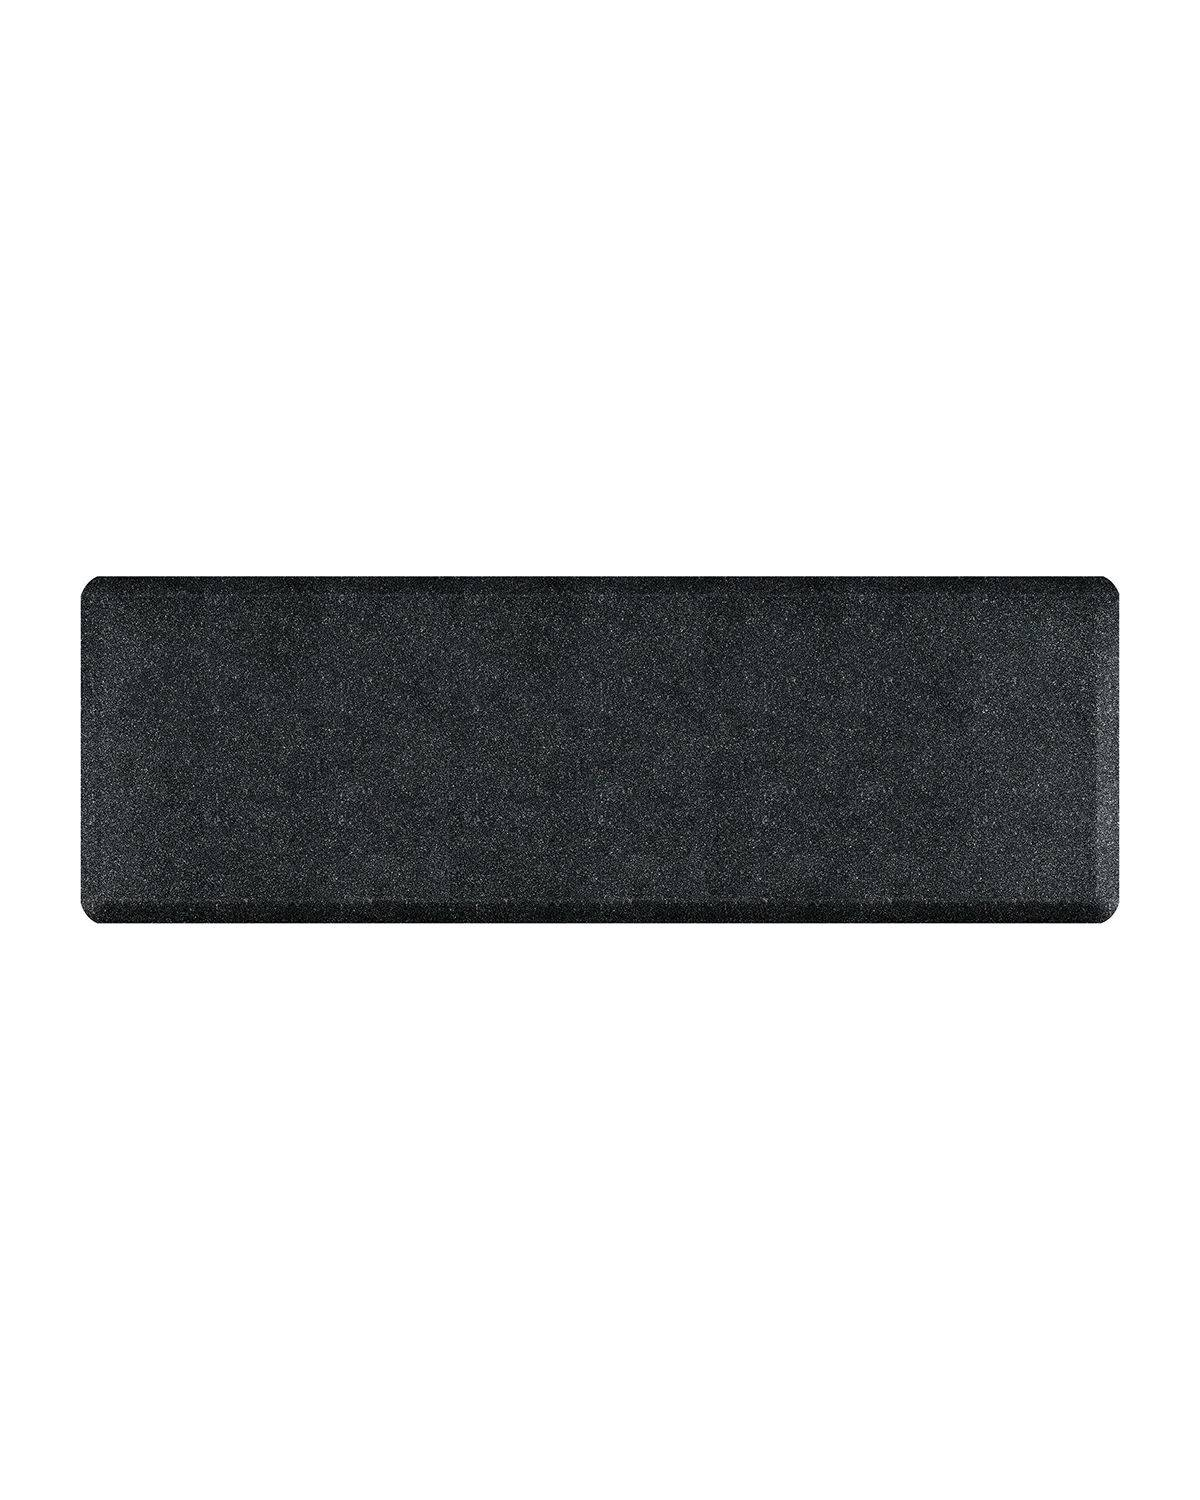 WellnessMats Granite Anti-Fatigue Kitchen Mat, 6' x 2'